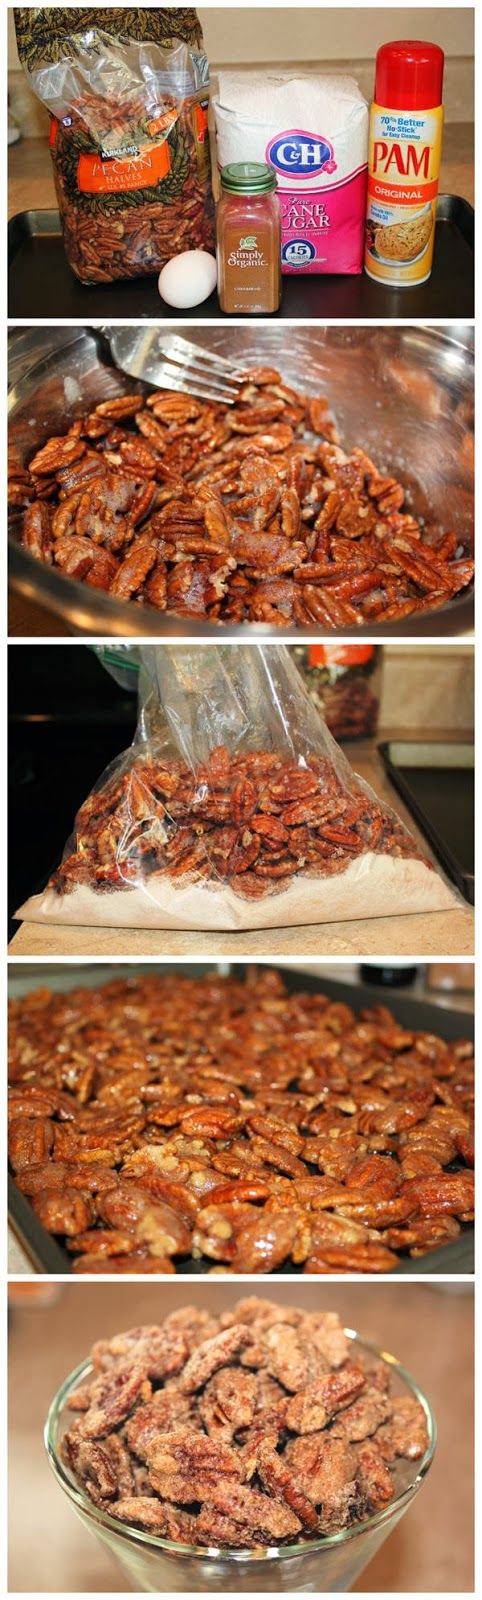 Cinnamon Sugar Pecans Recipe - kiss recipe my sweet mother-in-law use to make these and I always ate too many!! Missing Mawmaw